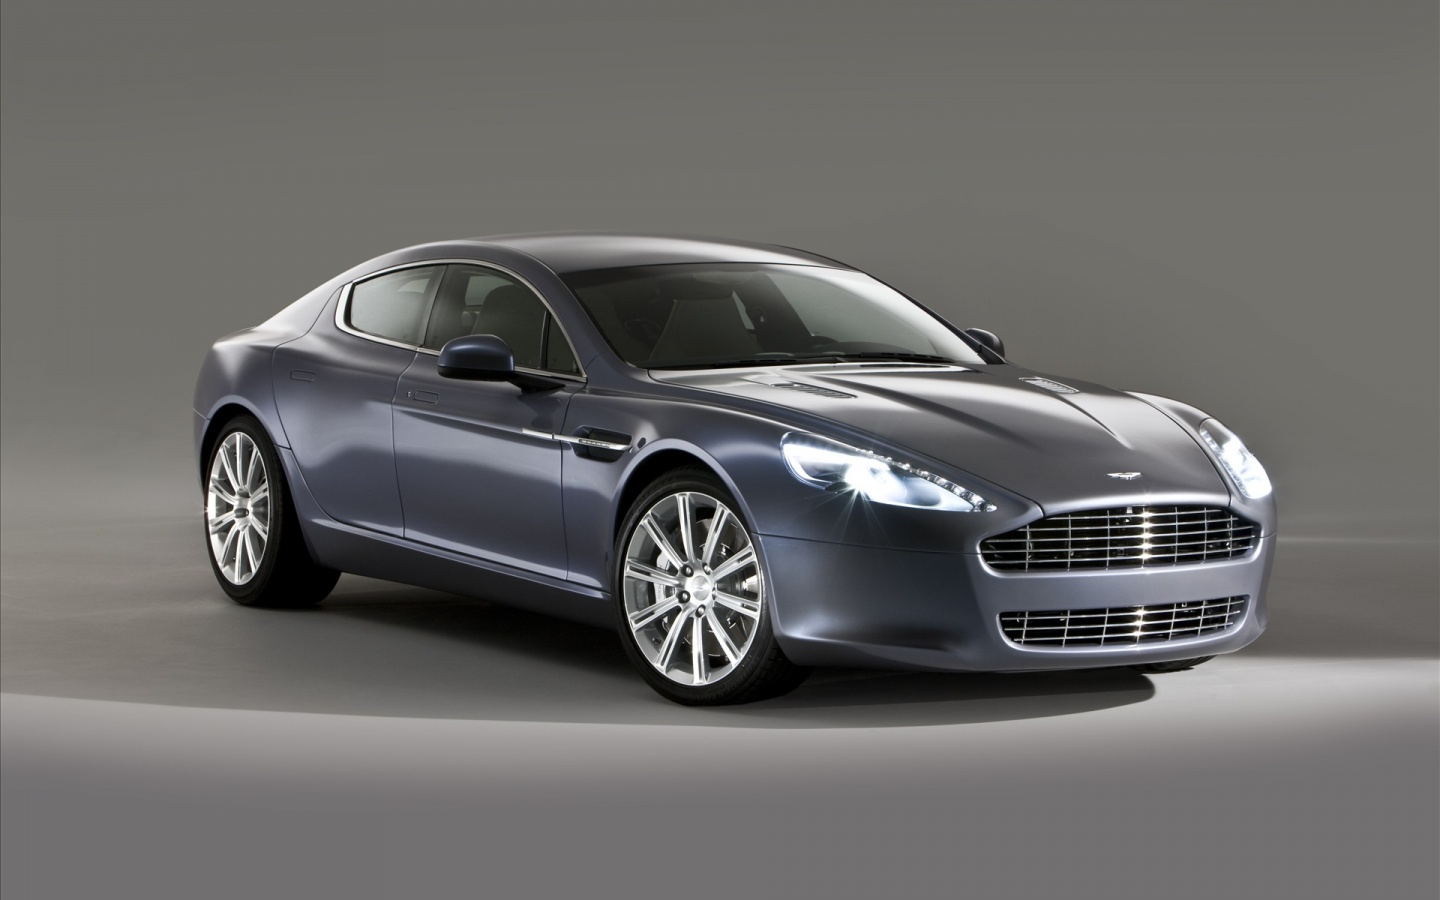 Aston Martin Rapide Car Wallpapers HD Wallpapers 1440x900